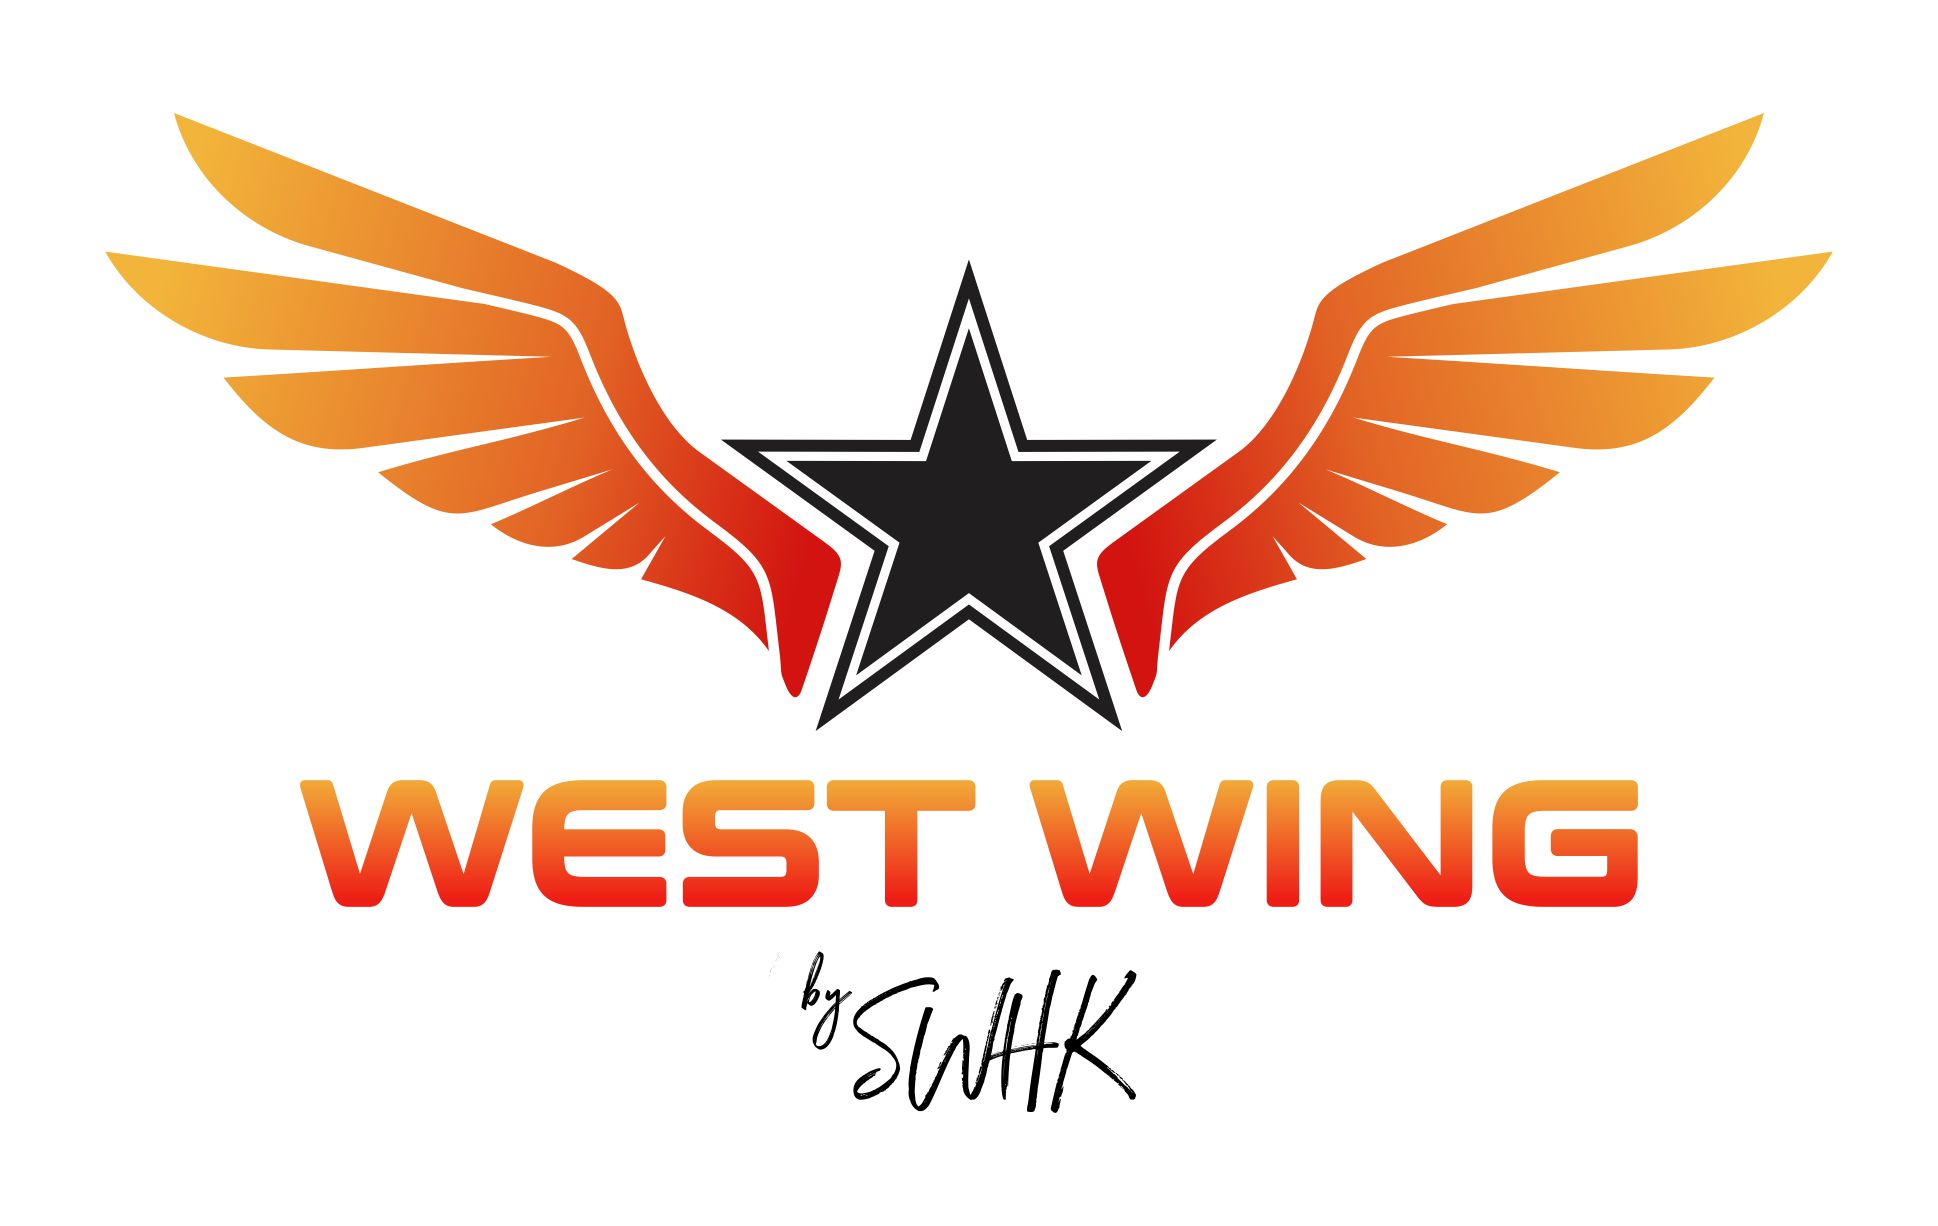 West Wing bySWHK